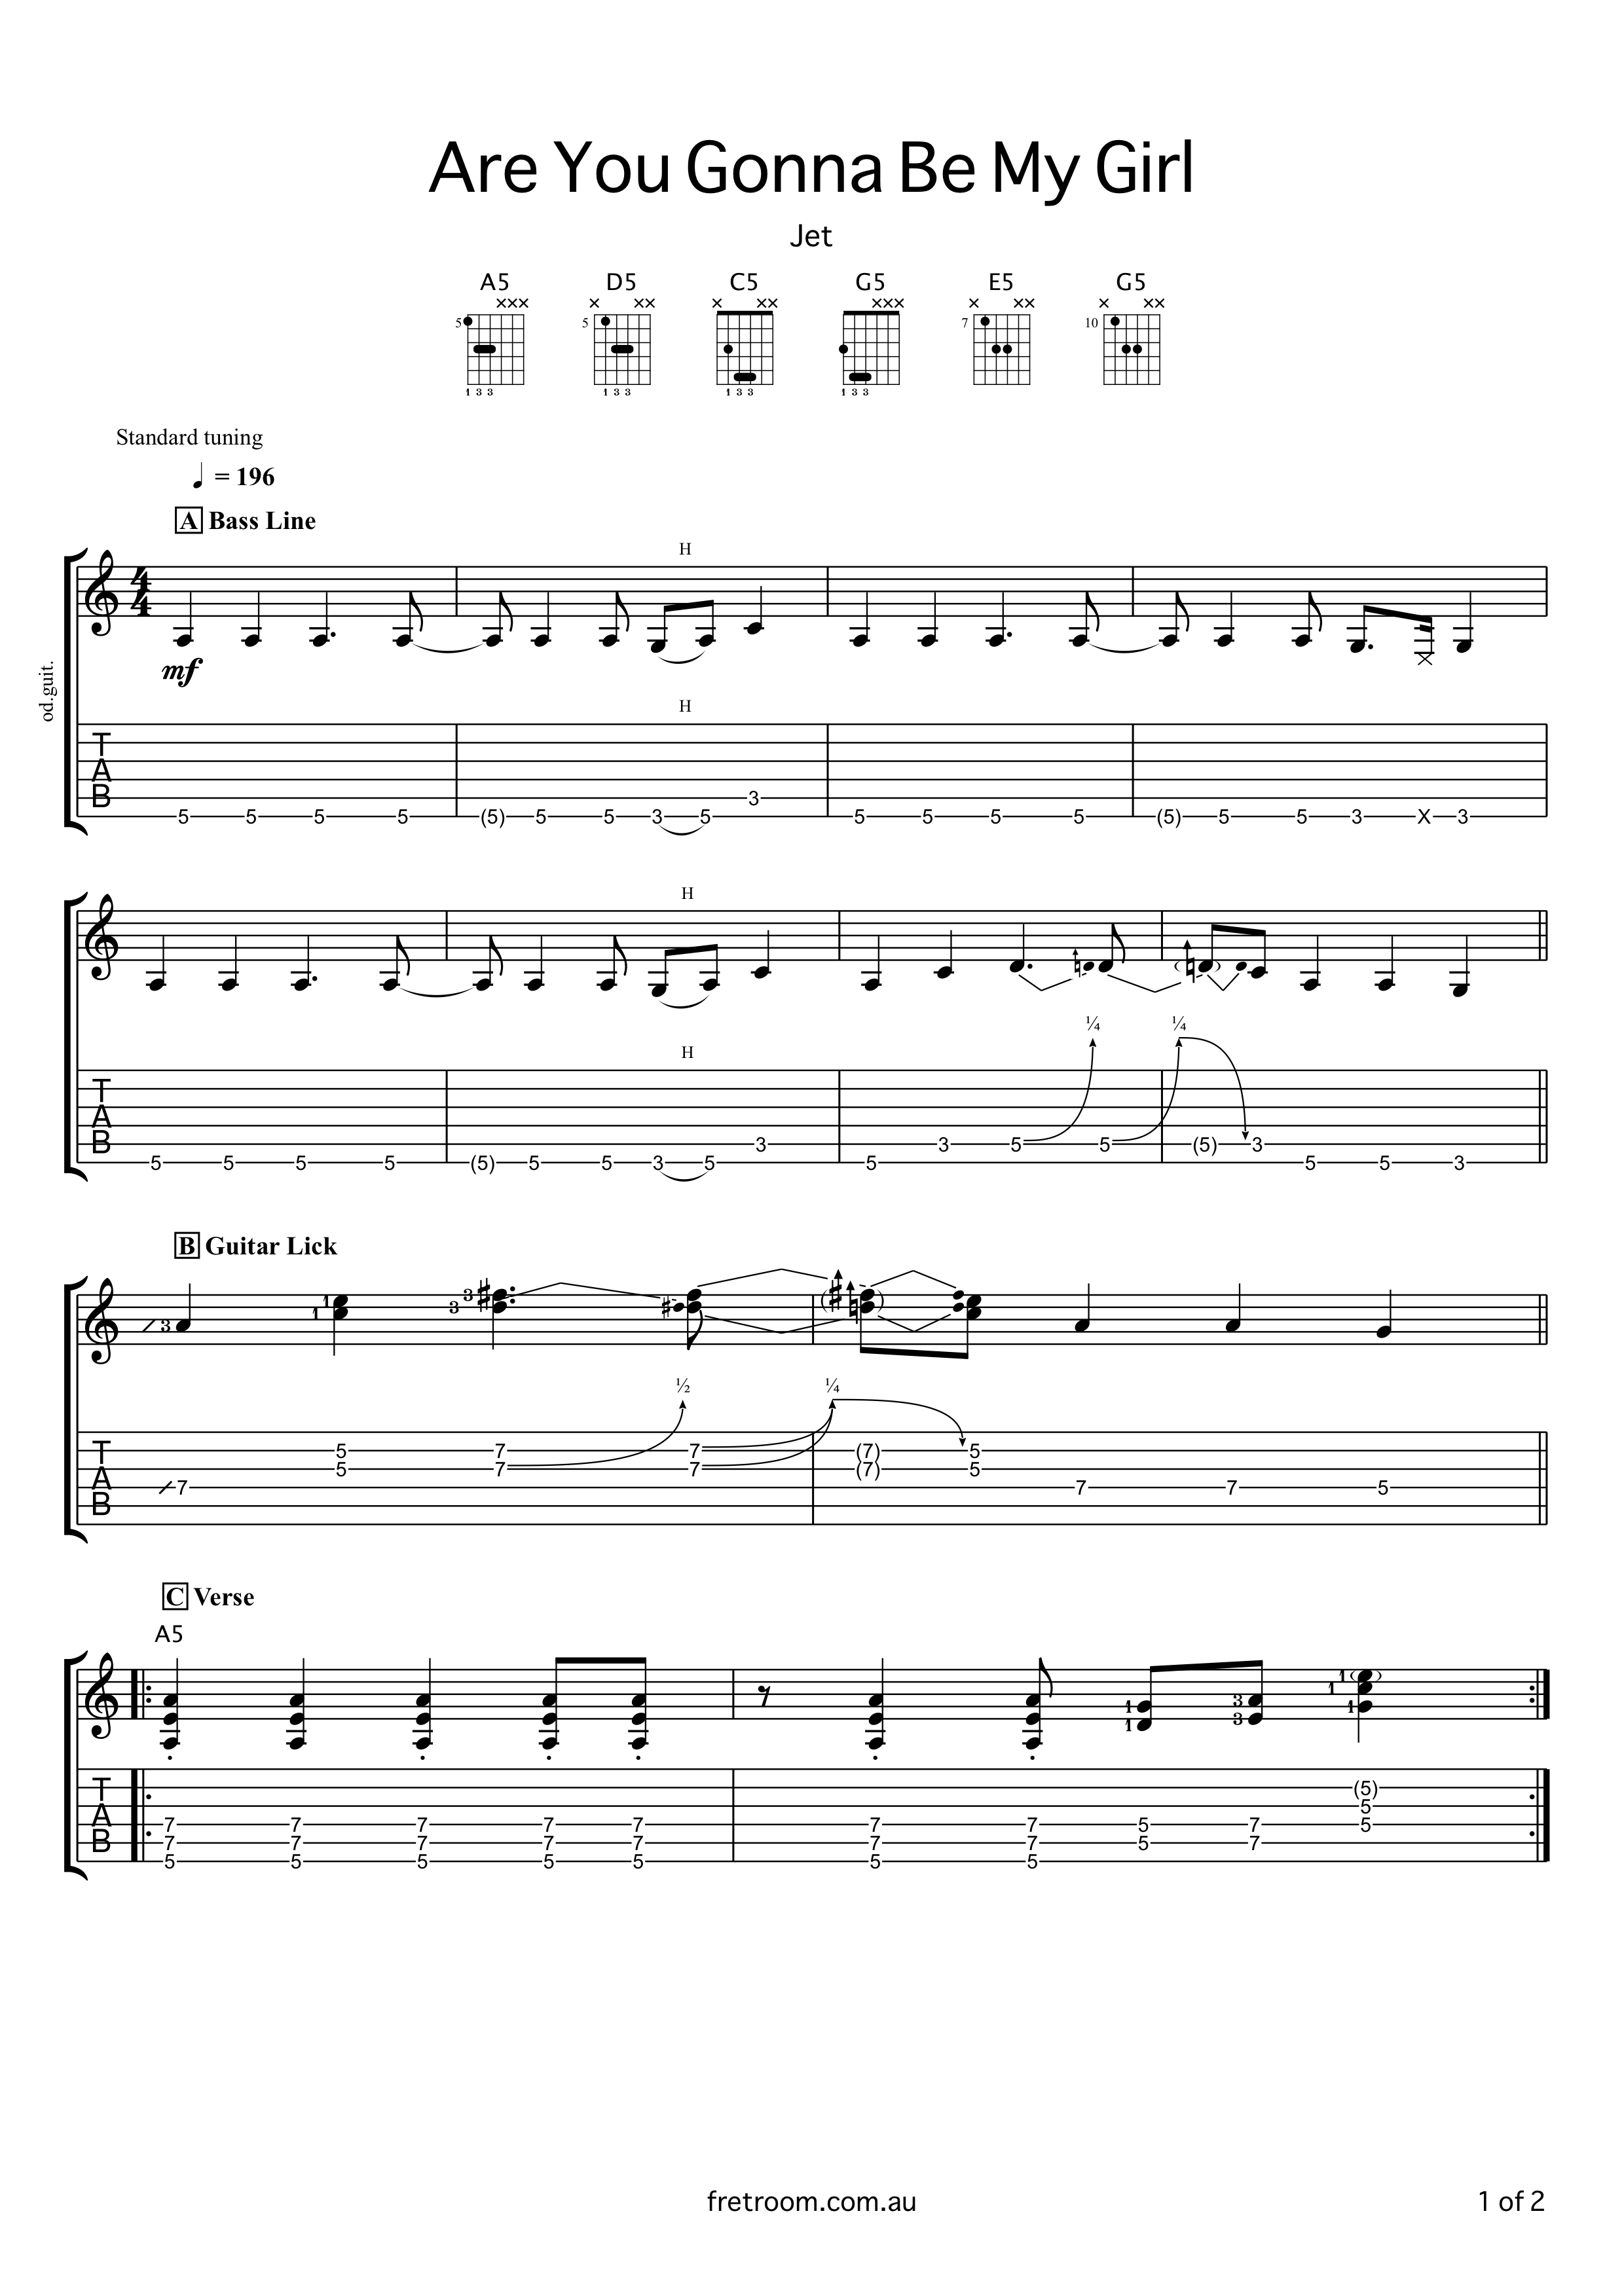 My Girl Chords Lesson Files Transcriptions Theory And Templates Results From